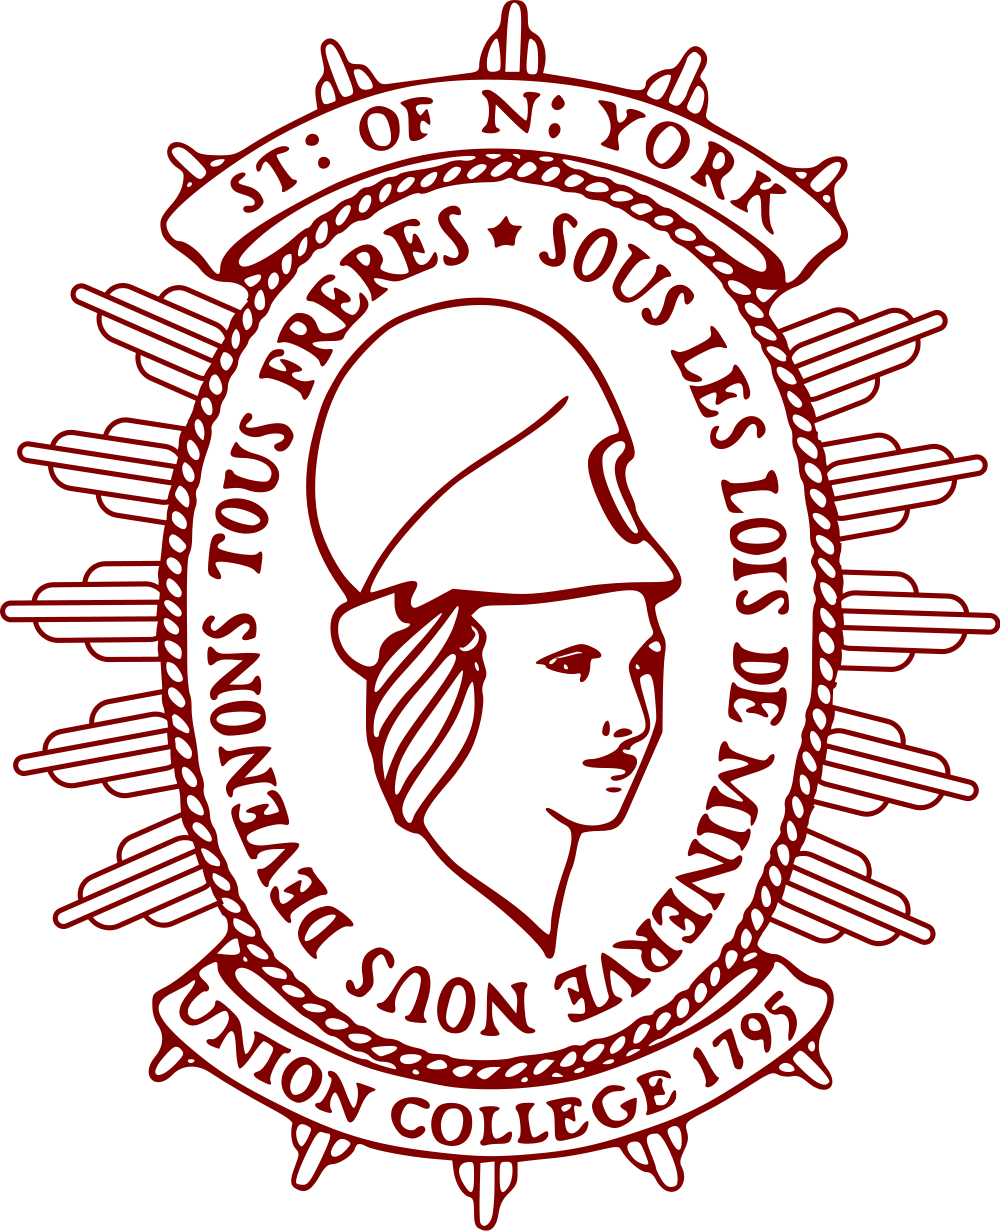 Union College Seal